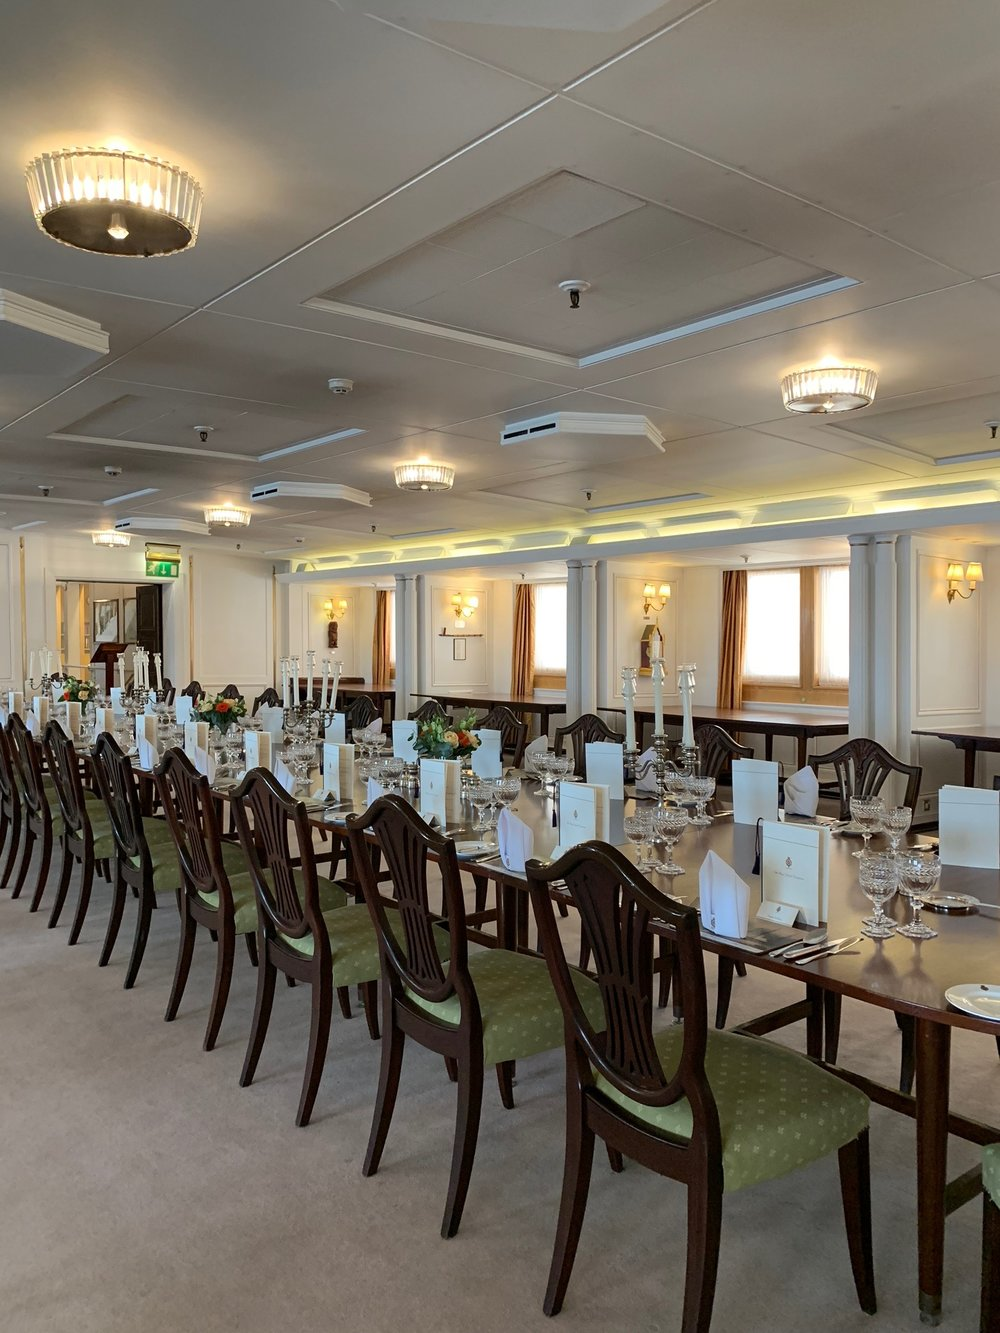 The dining room which hosted many famous guests including Churchill, Mandela, Sinatra and Clinton